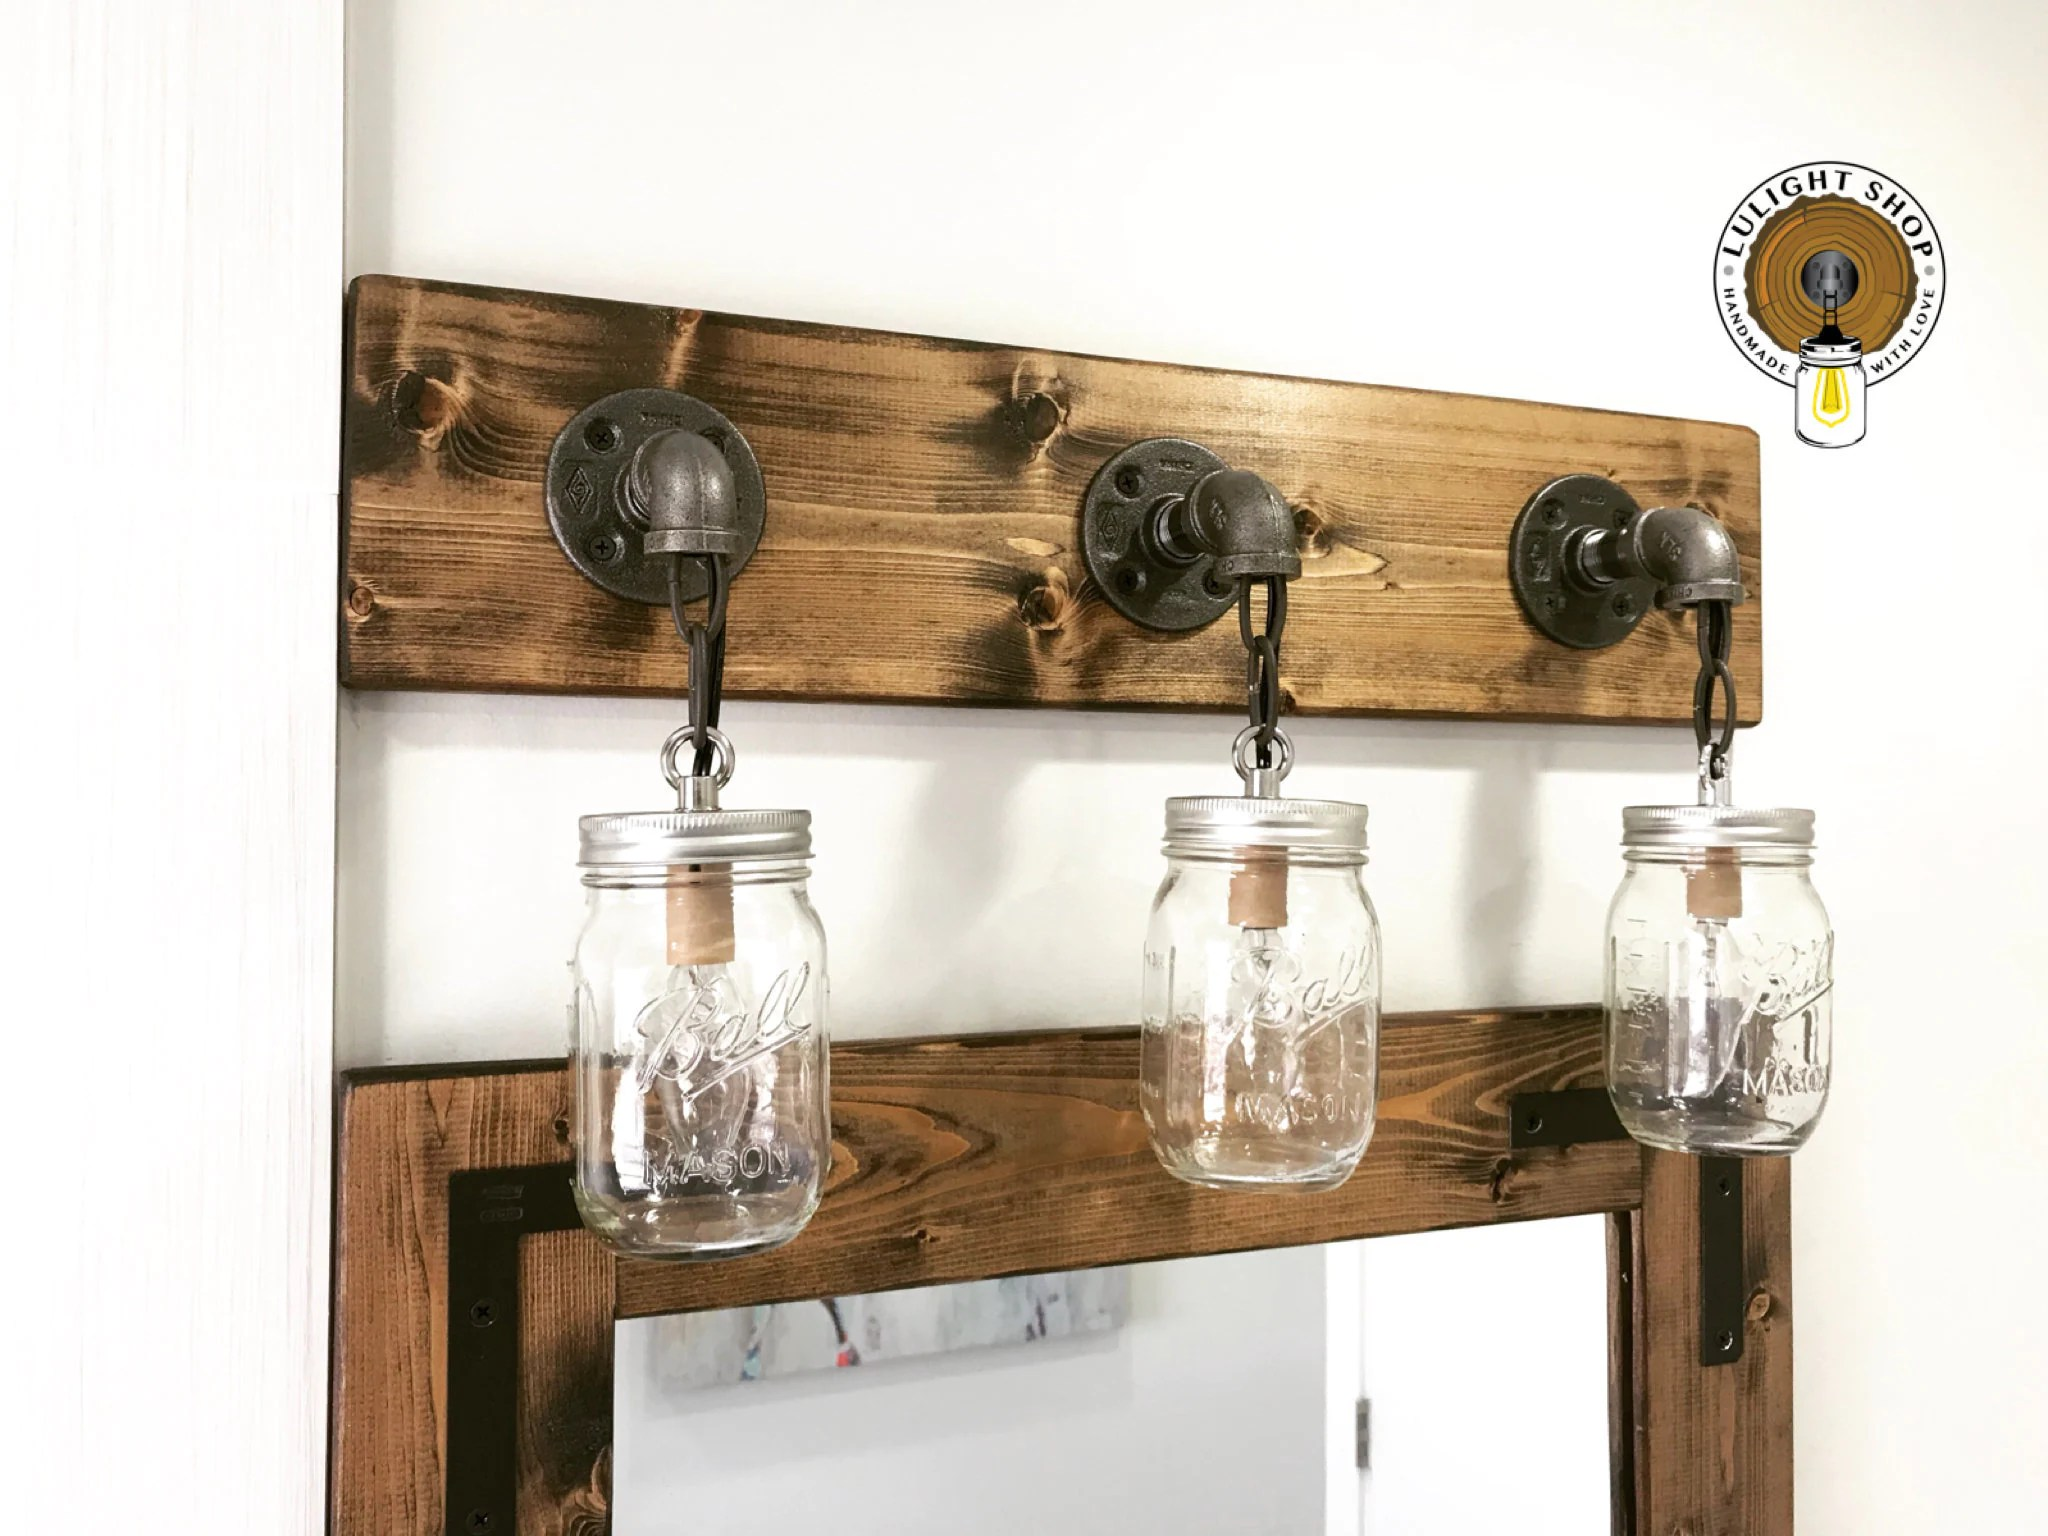 Mason Jar Bathroom Light Dark Walnut Mason Jar Light Bar Light Fixture Wall Fixture Rustic Industrial Handmade Decor Bathroom Light Pendant Light Authentic Jar